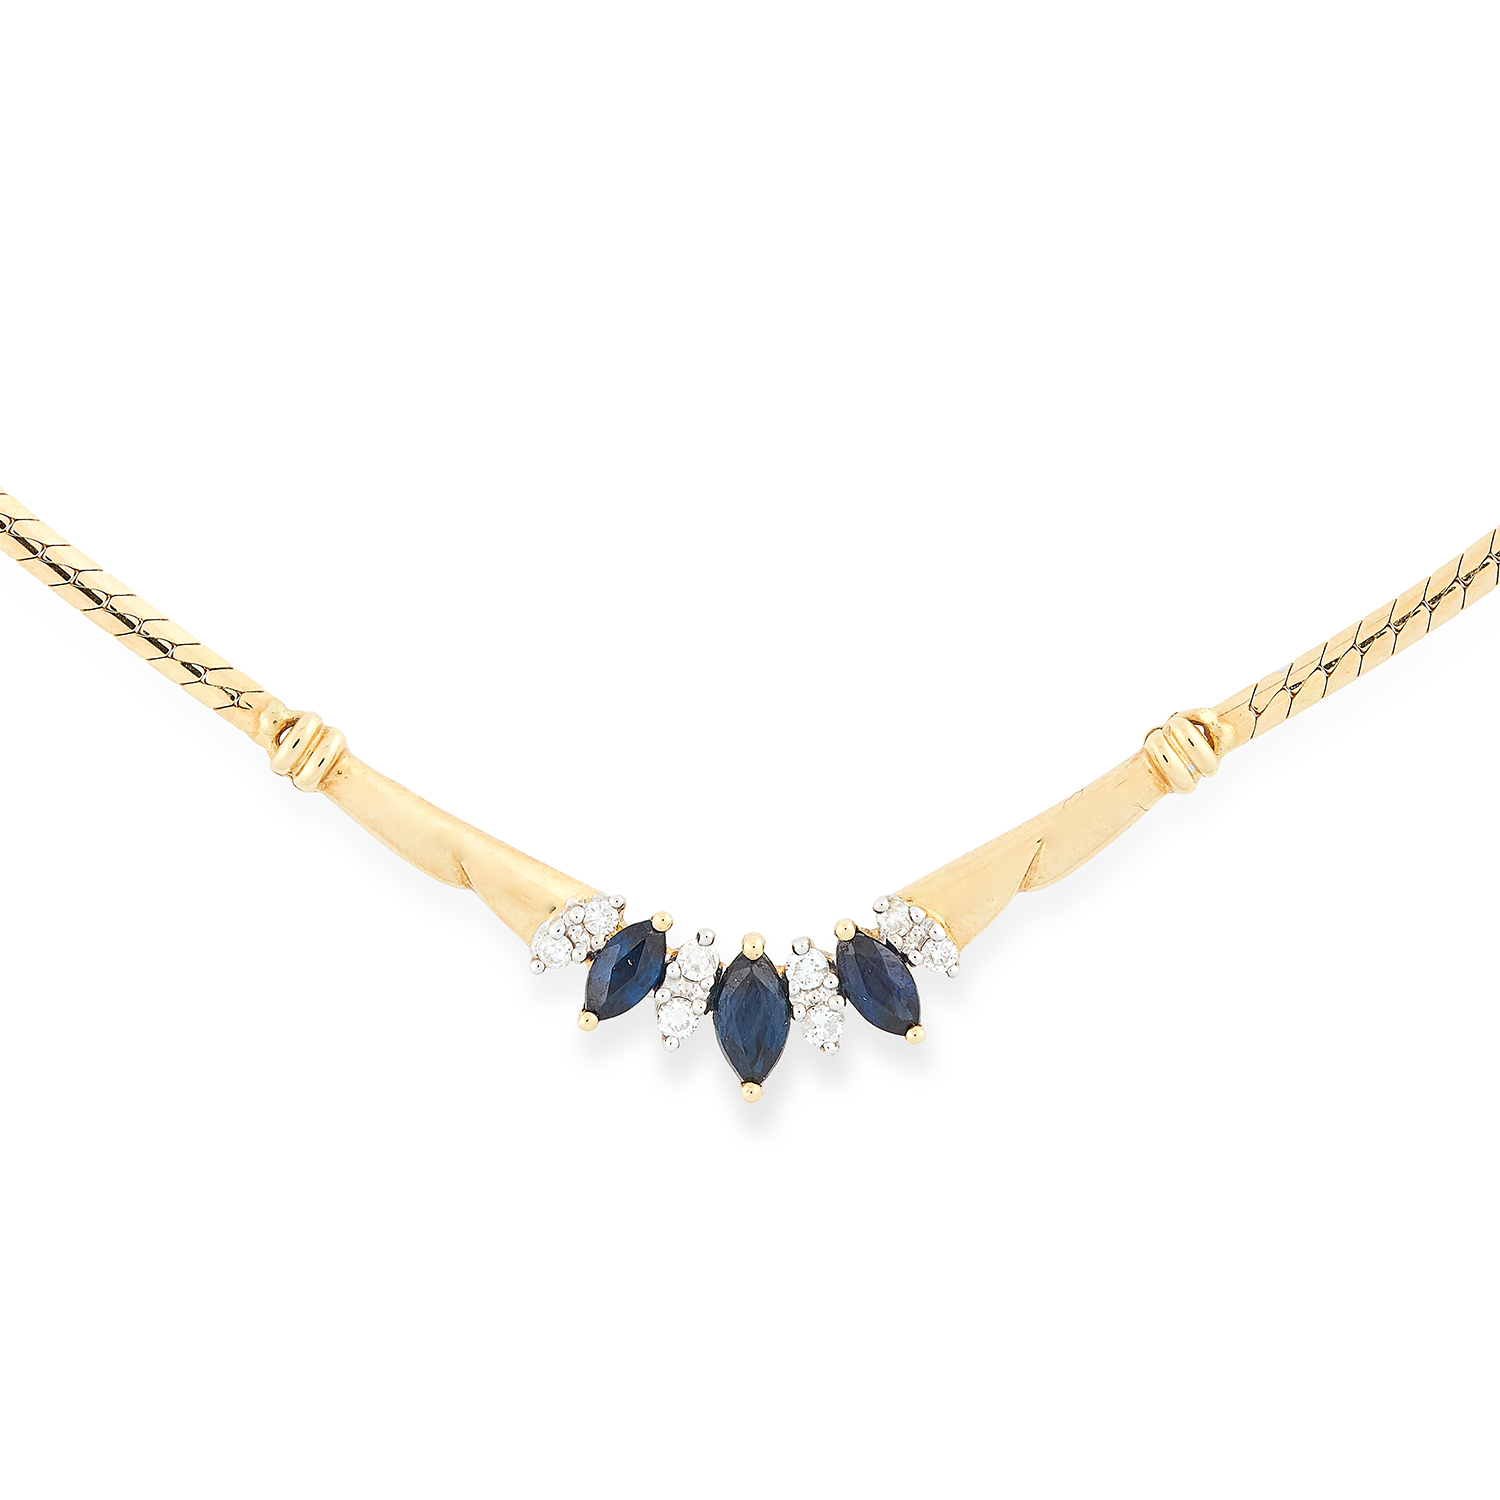 Los 72 - SAPPHIRE AND DIAMOND EARRING AND NECKLACE SUITE set with marquise cut sapphires and round cut